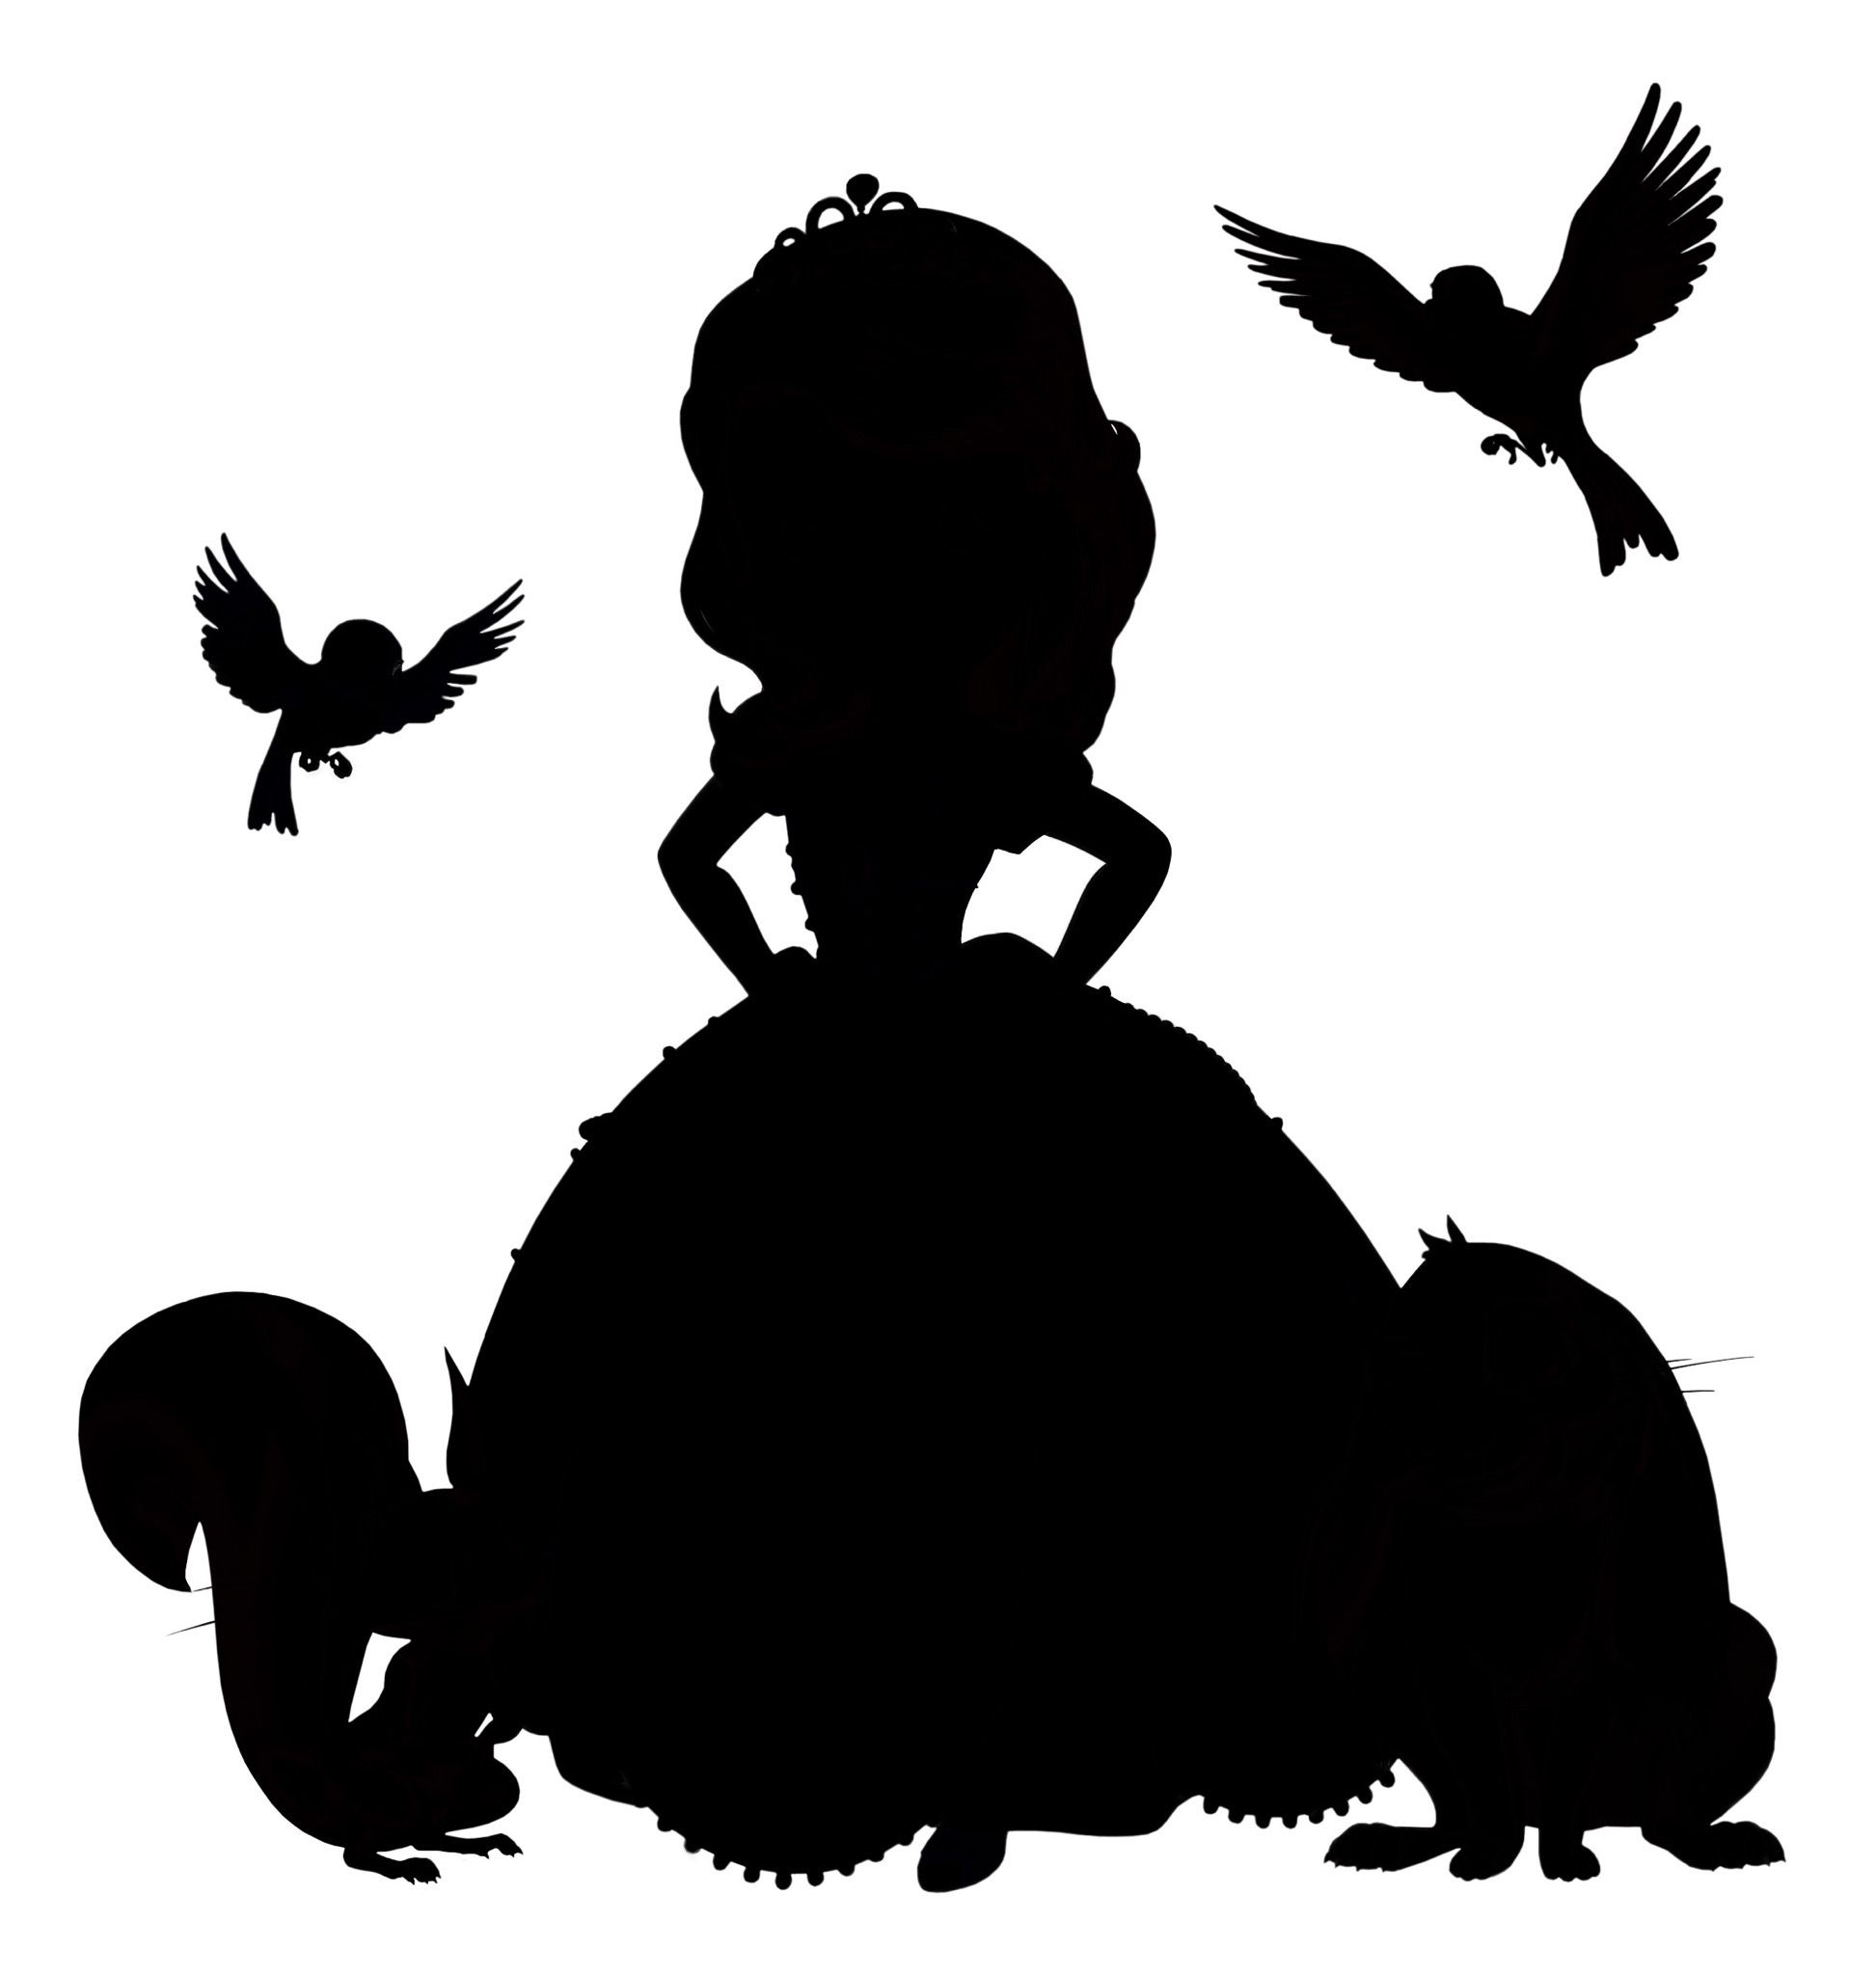 picture of sofia the first sofia the first silhouette sofia the first human first picture of the sofia